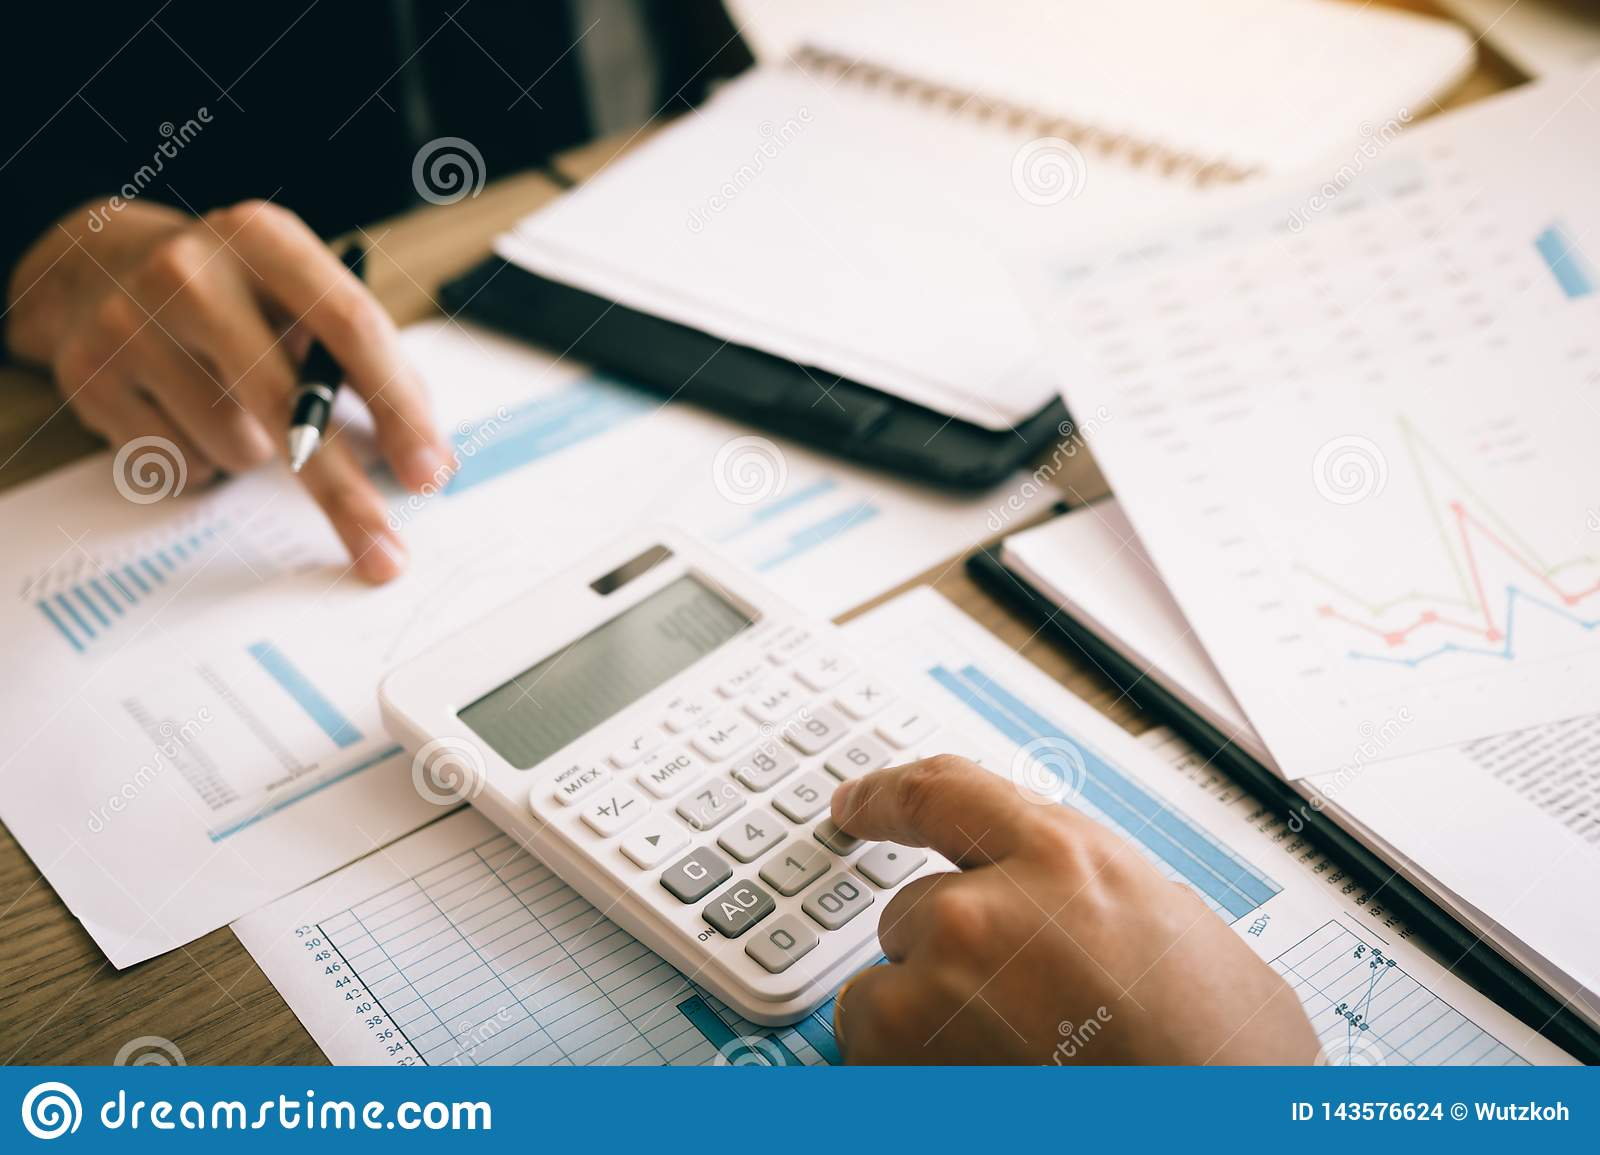 Two employees are calculating about the profit of the company after deducting expenses